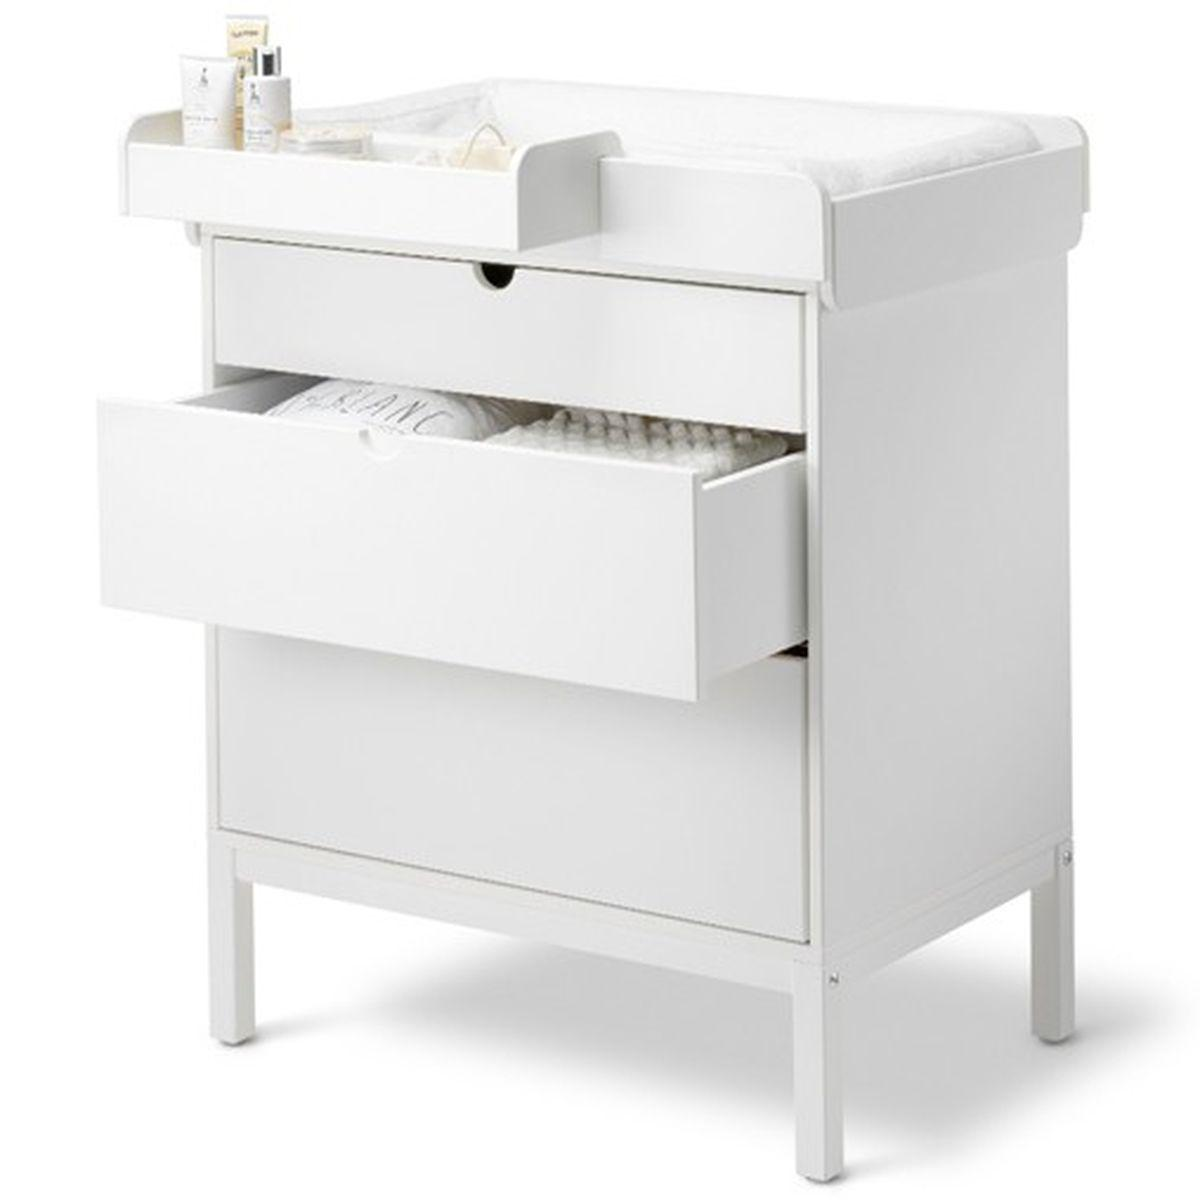 Commode 3 tiroirs HOME Stokke blanc